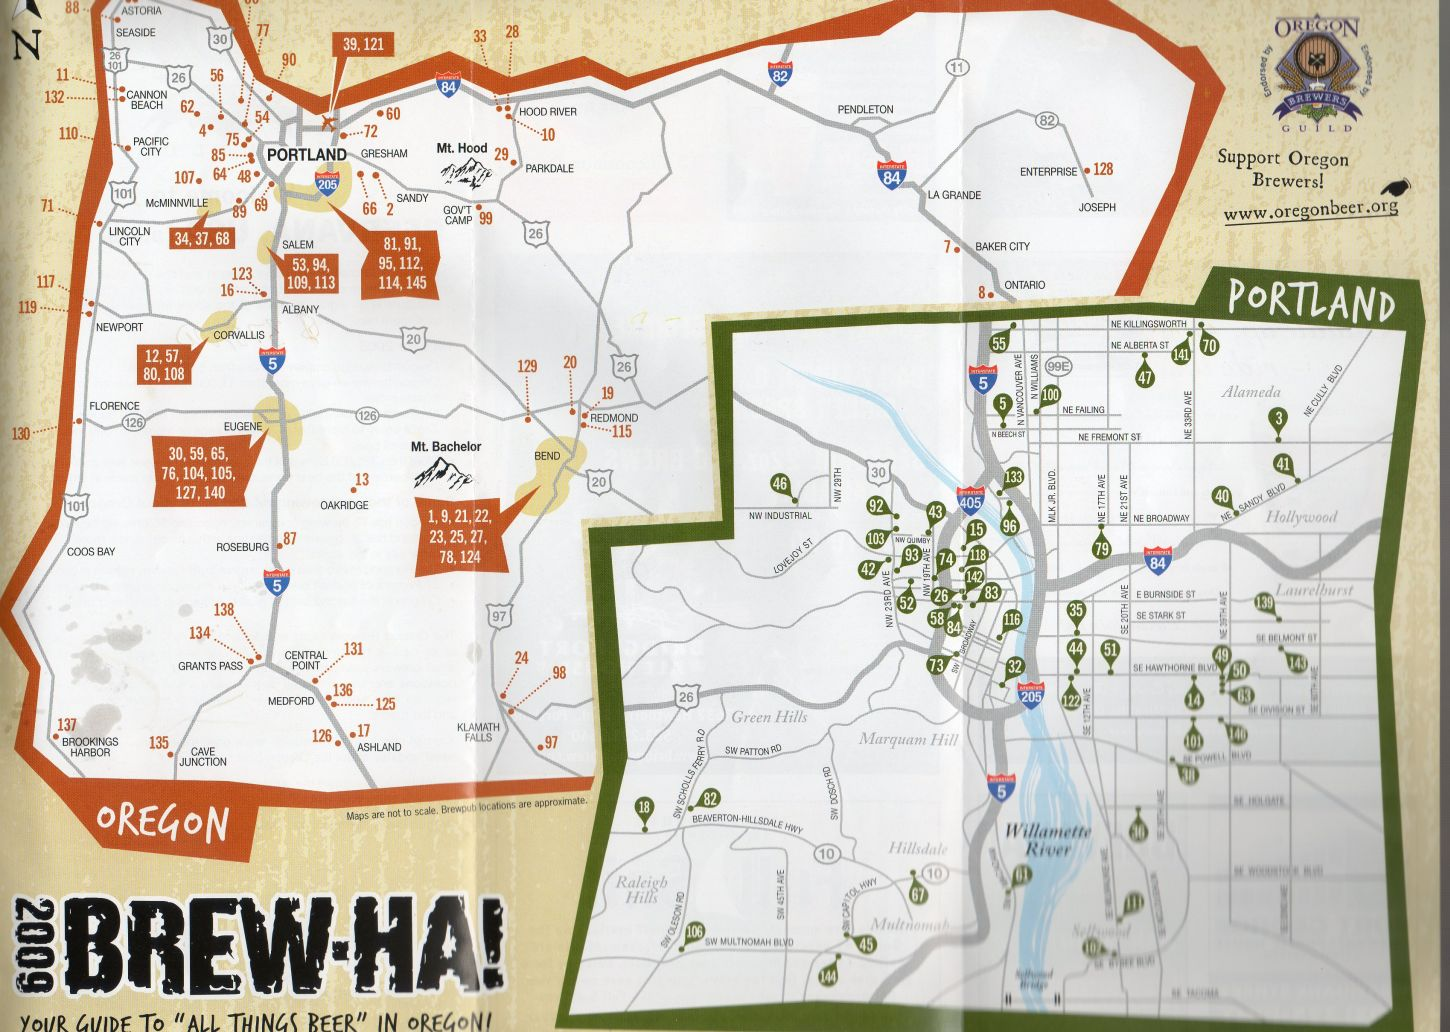 Portland Breweries Map New Brew Ha! Portland Breweries Map